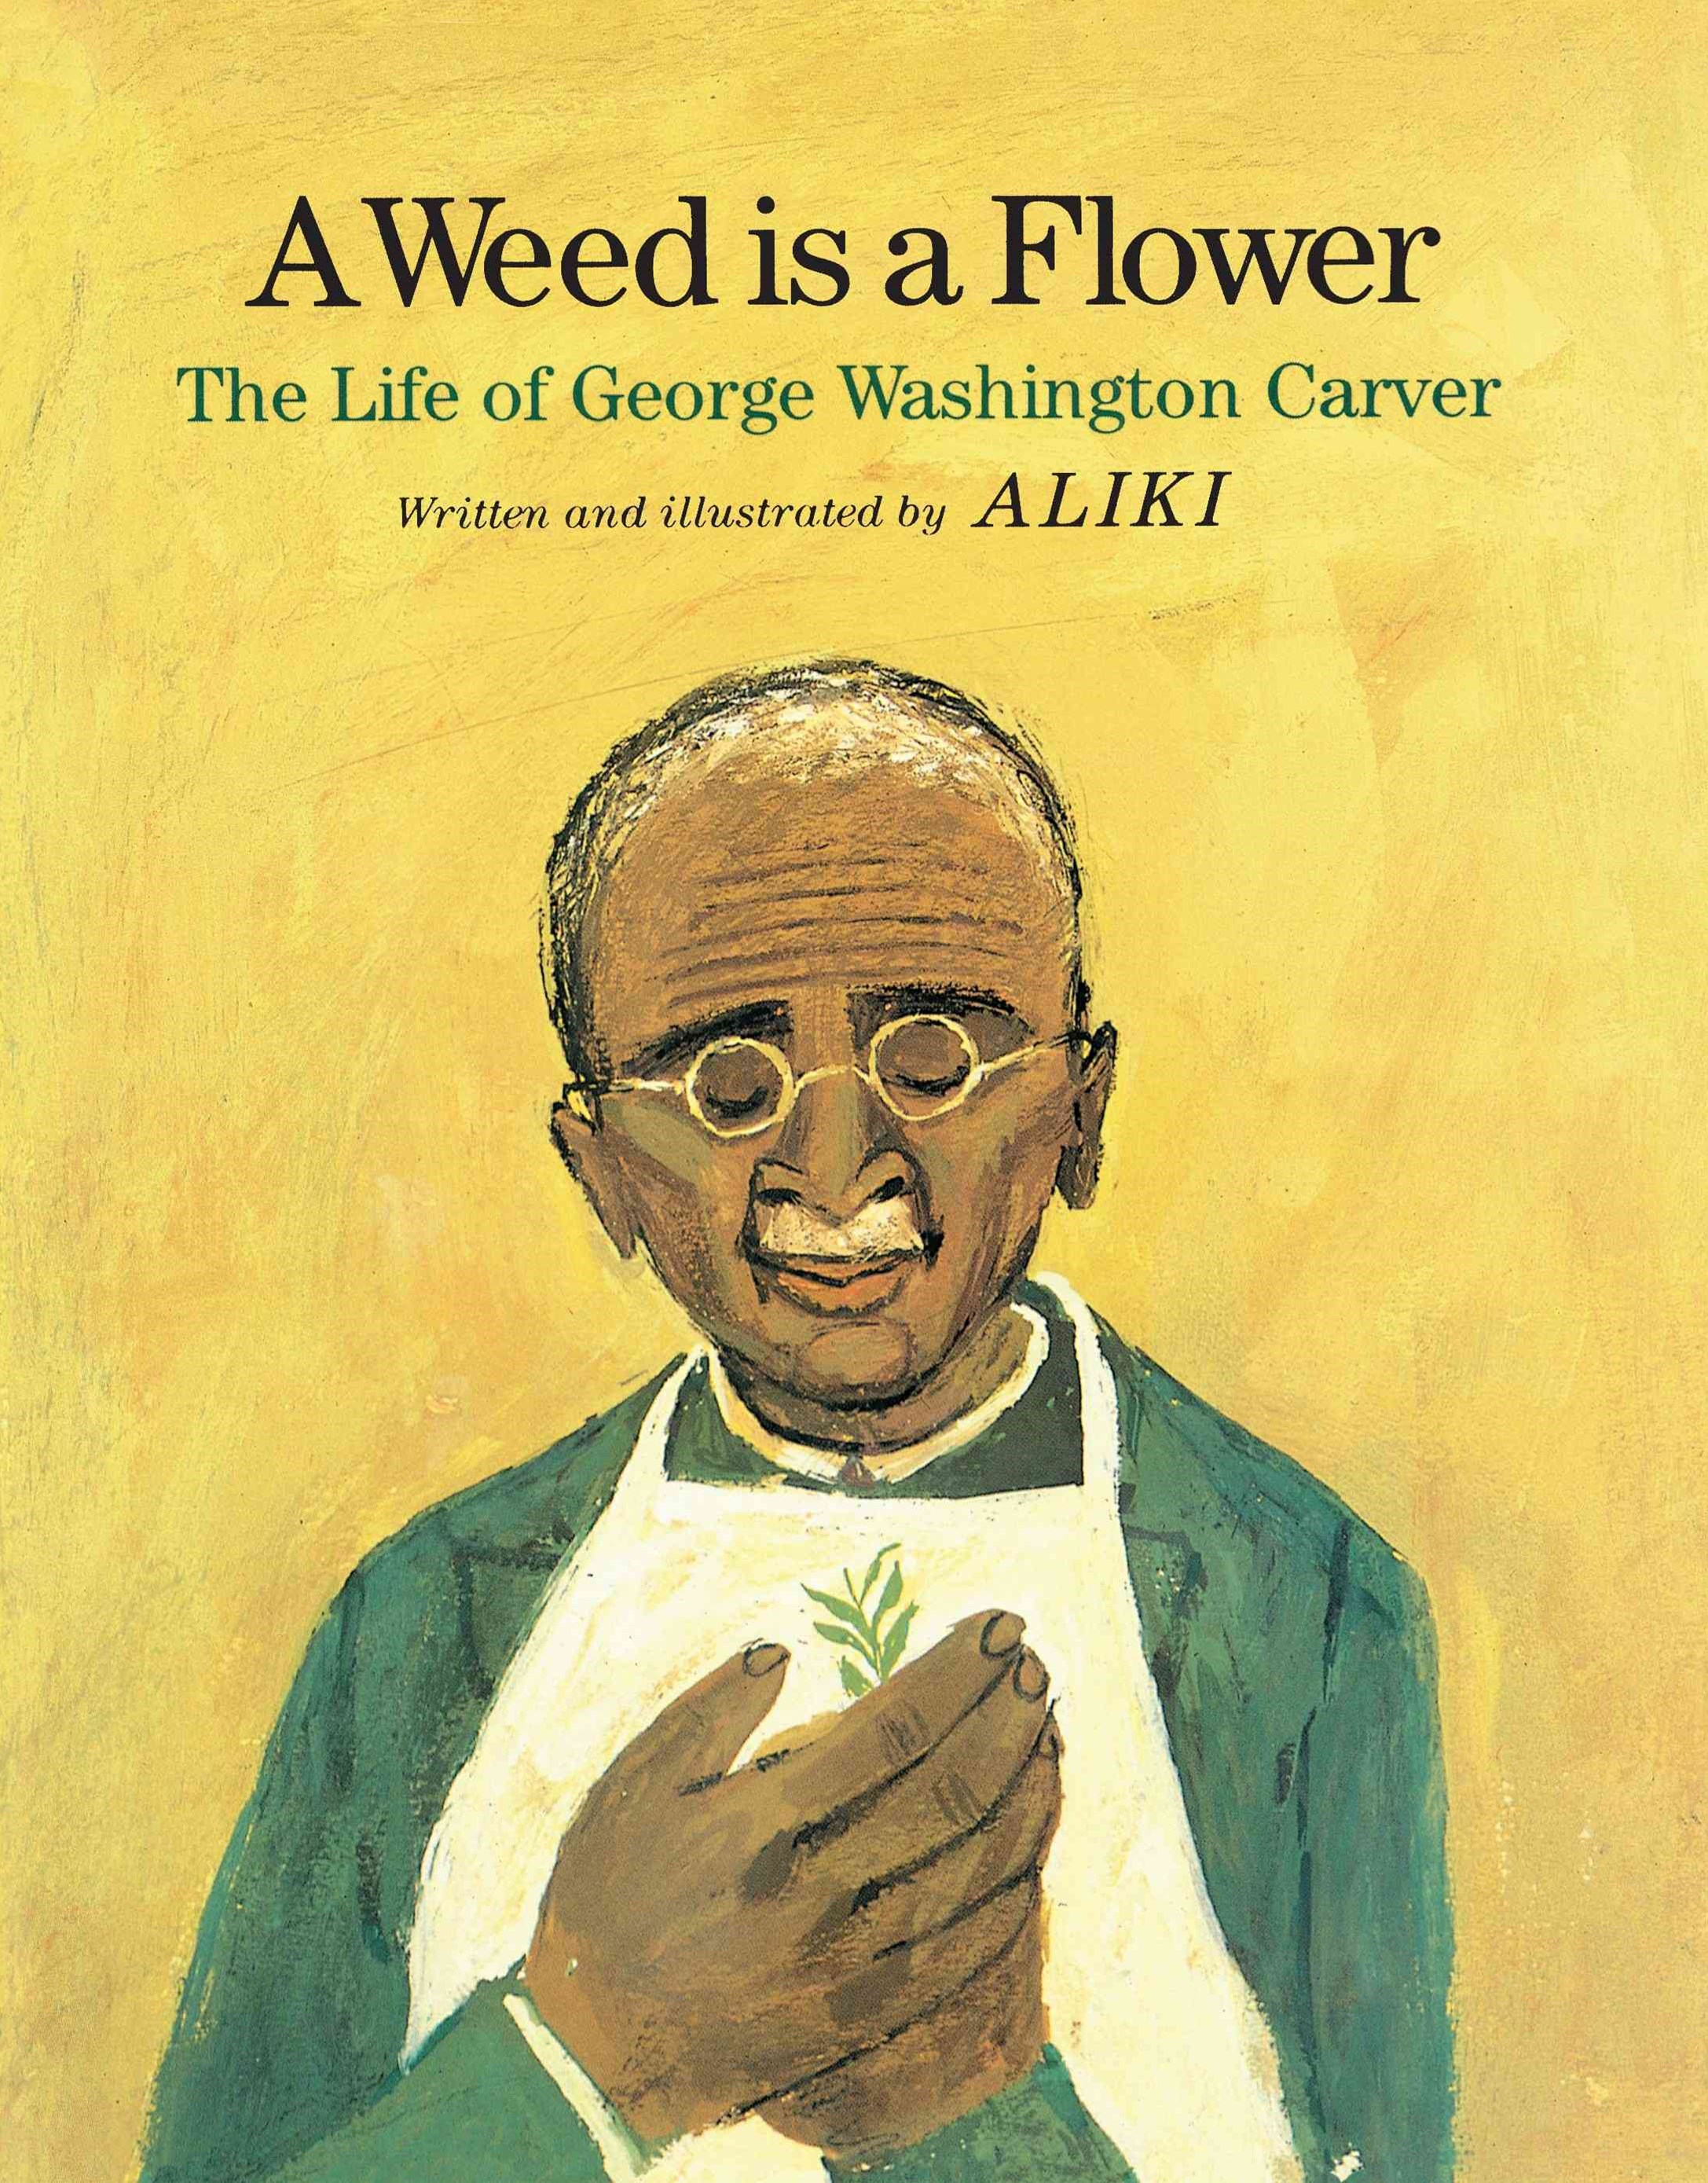 A Weed Is a Flower